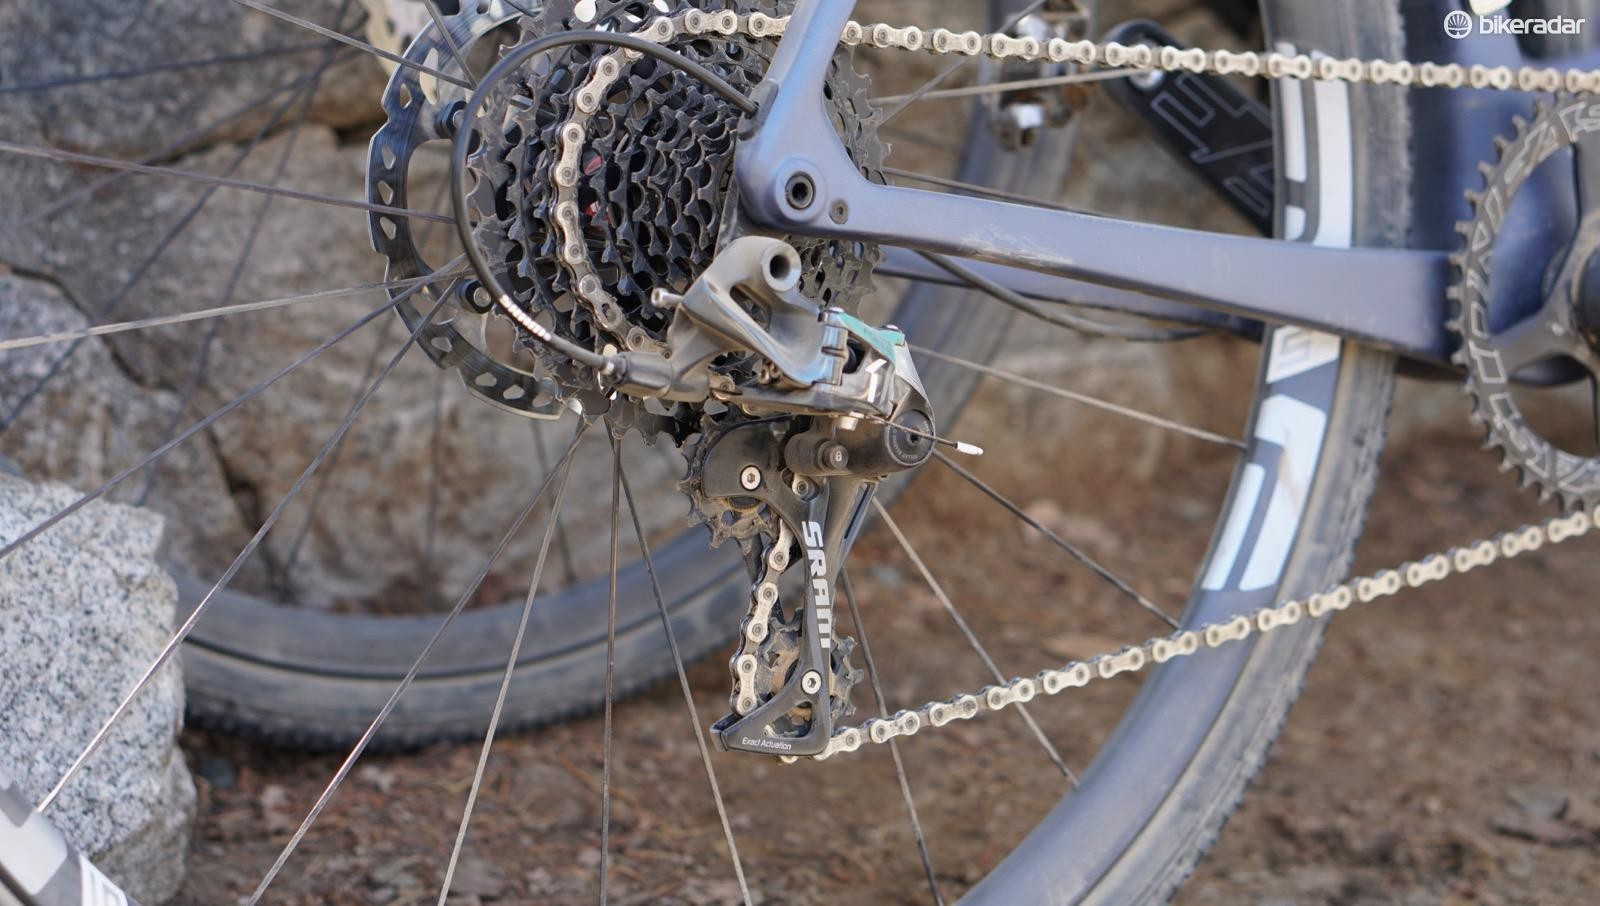 SRAM's Force 1 derailleur with a clutch is an excellent option for gravel, keeping the chain relatively taut